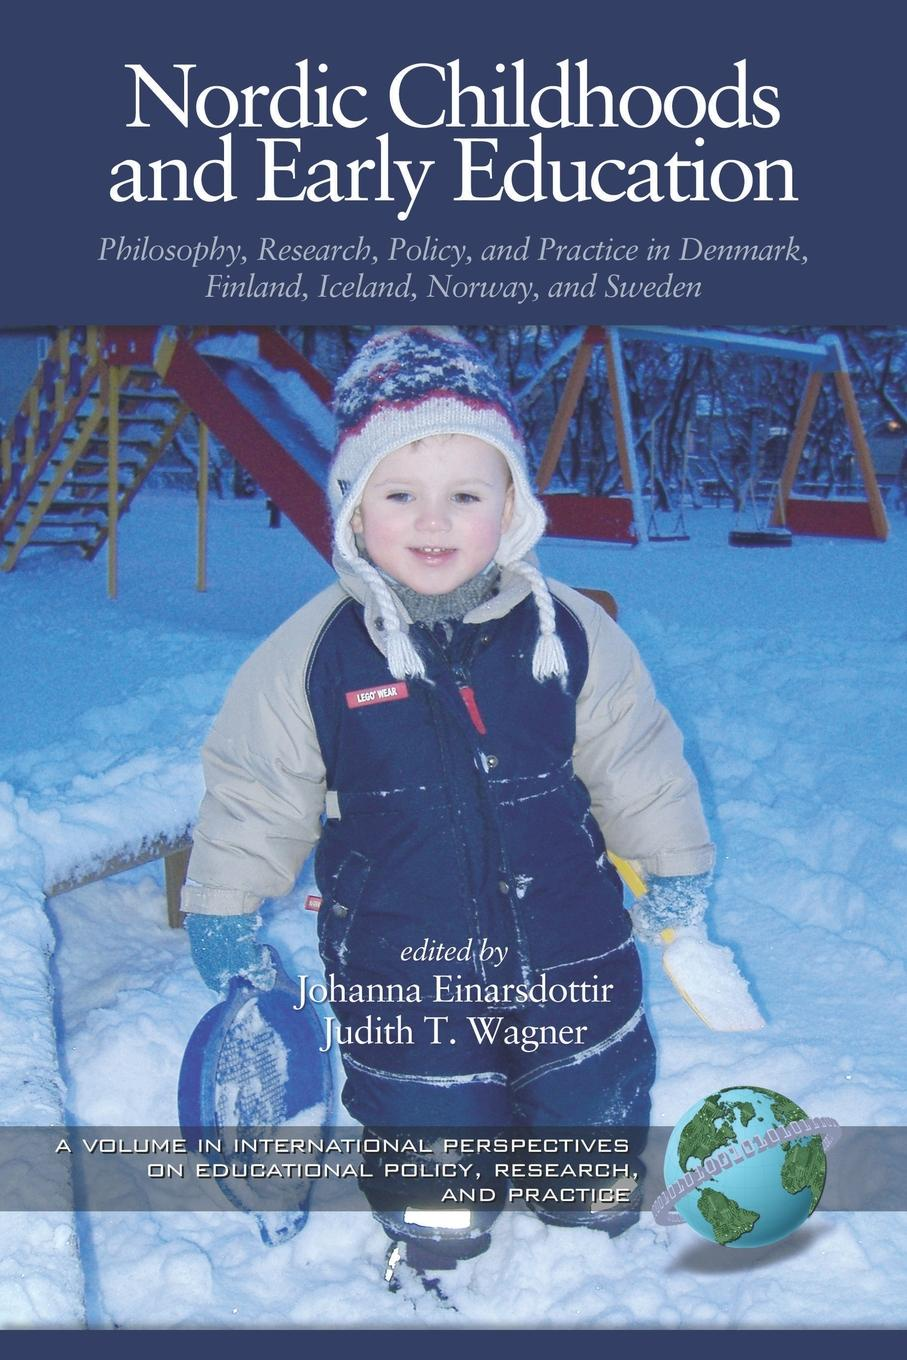 Nordic Childhoods and Early Education. Philosophy, Research, Policy and Practice in Denmark, Finland, Iceland, Norway, and Sweden (PB) недорого